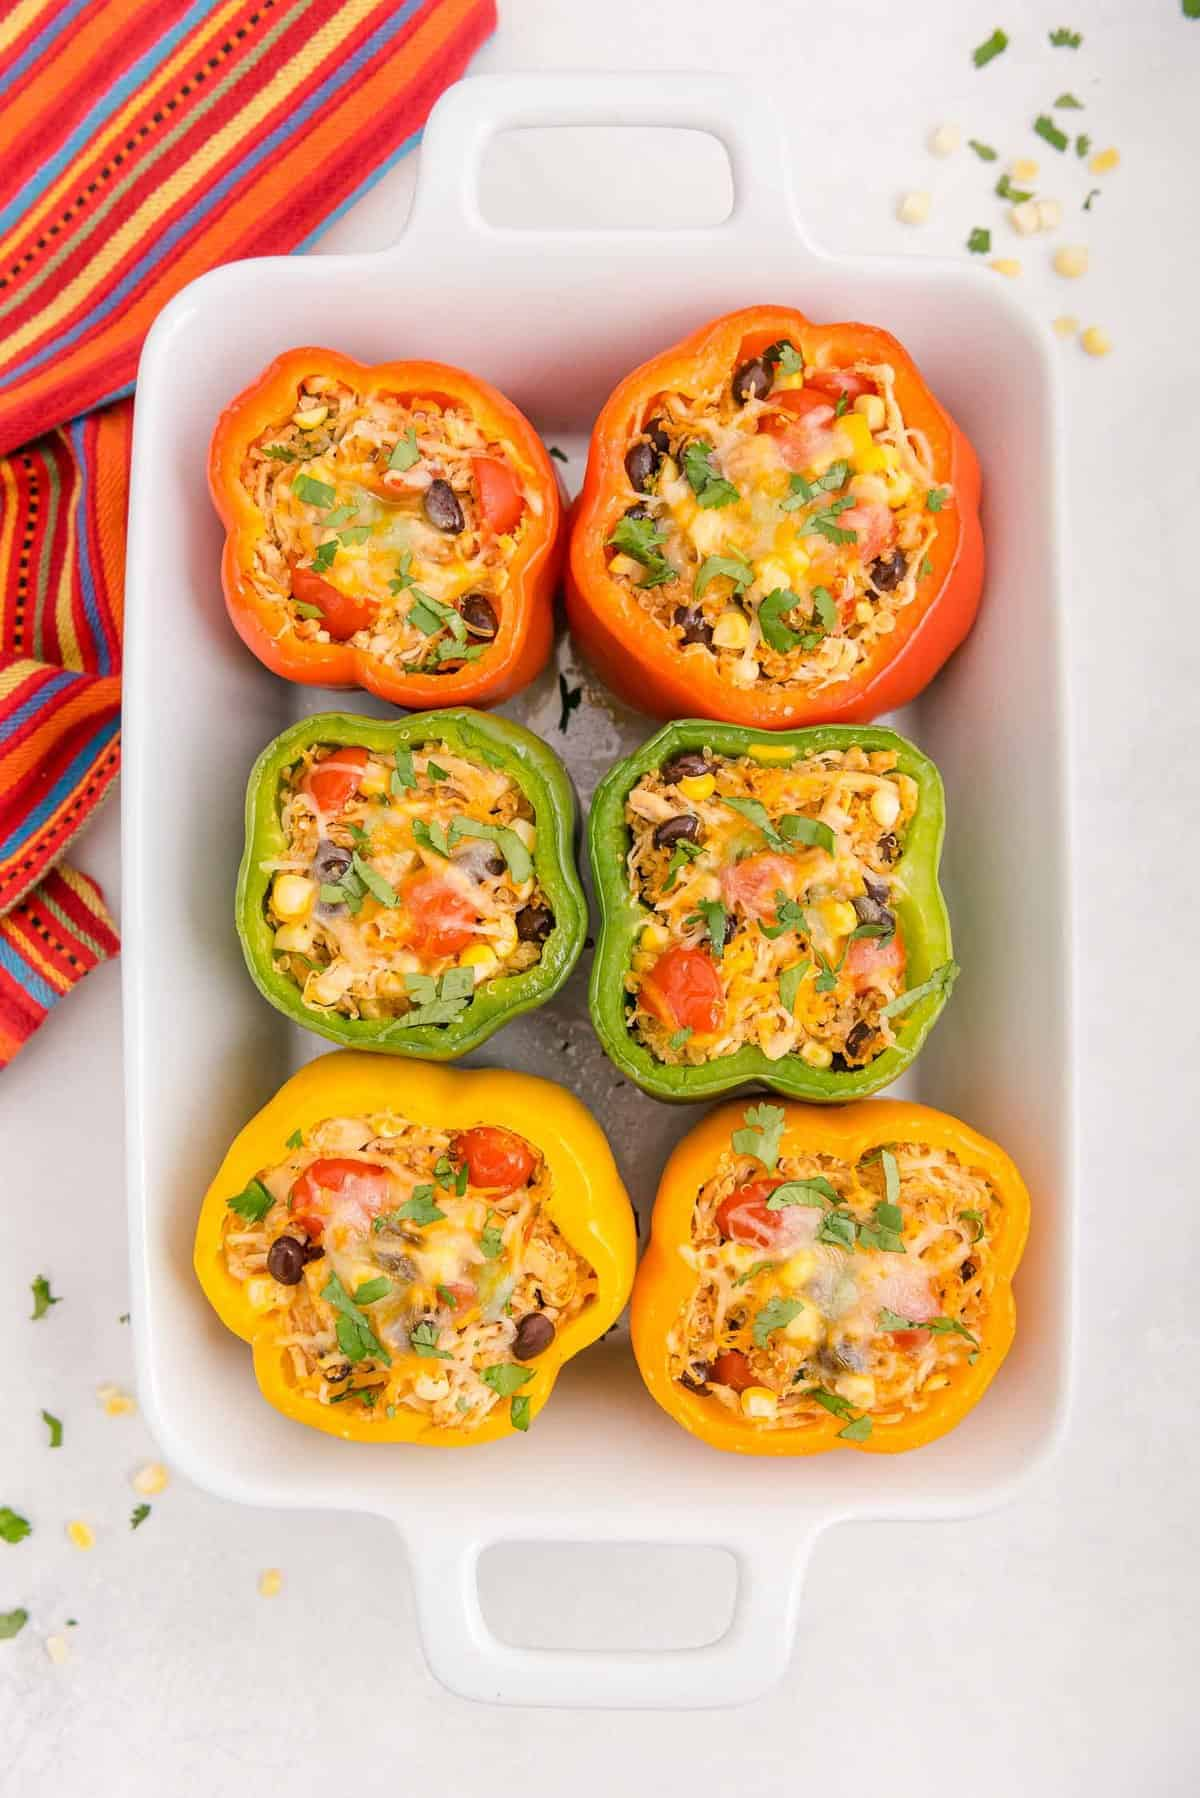 Overhead view of six stuffed peppers in a white glass pan.